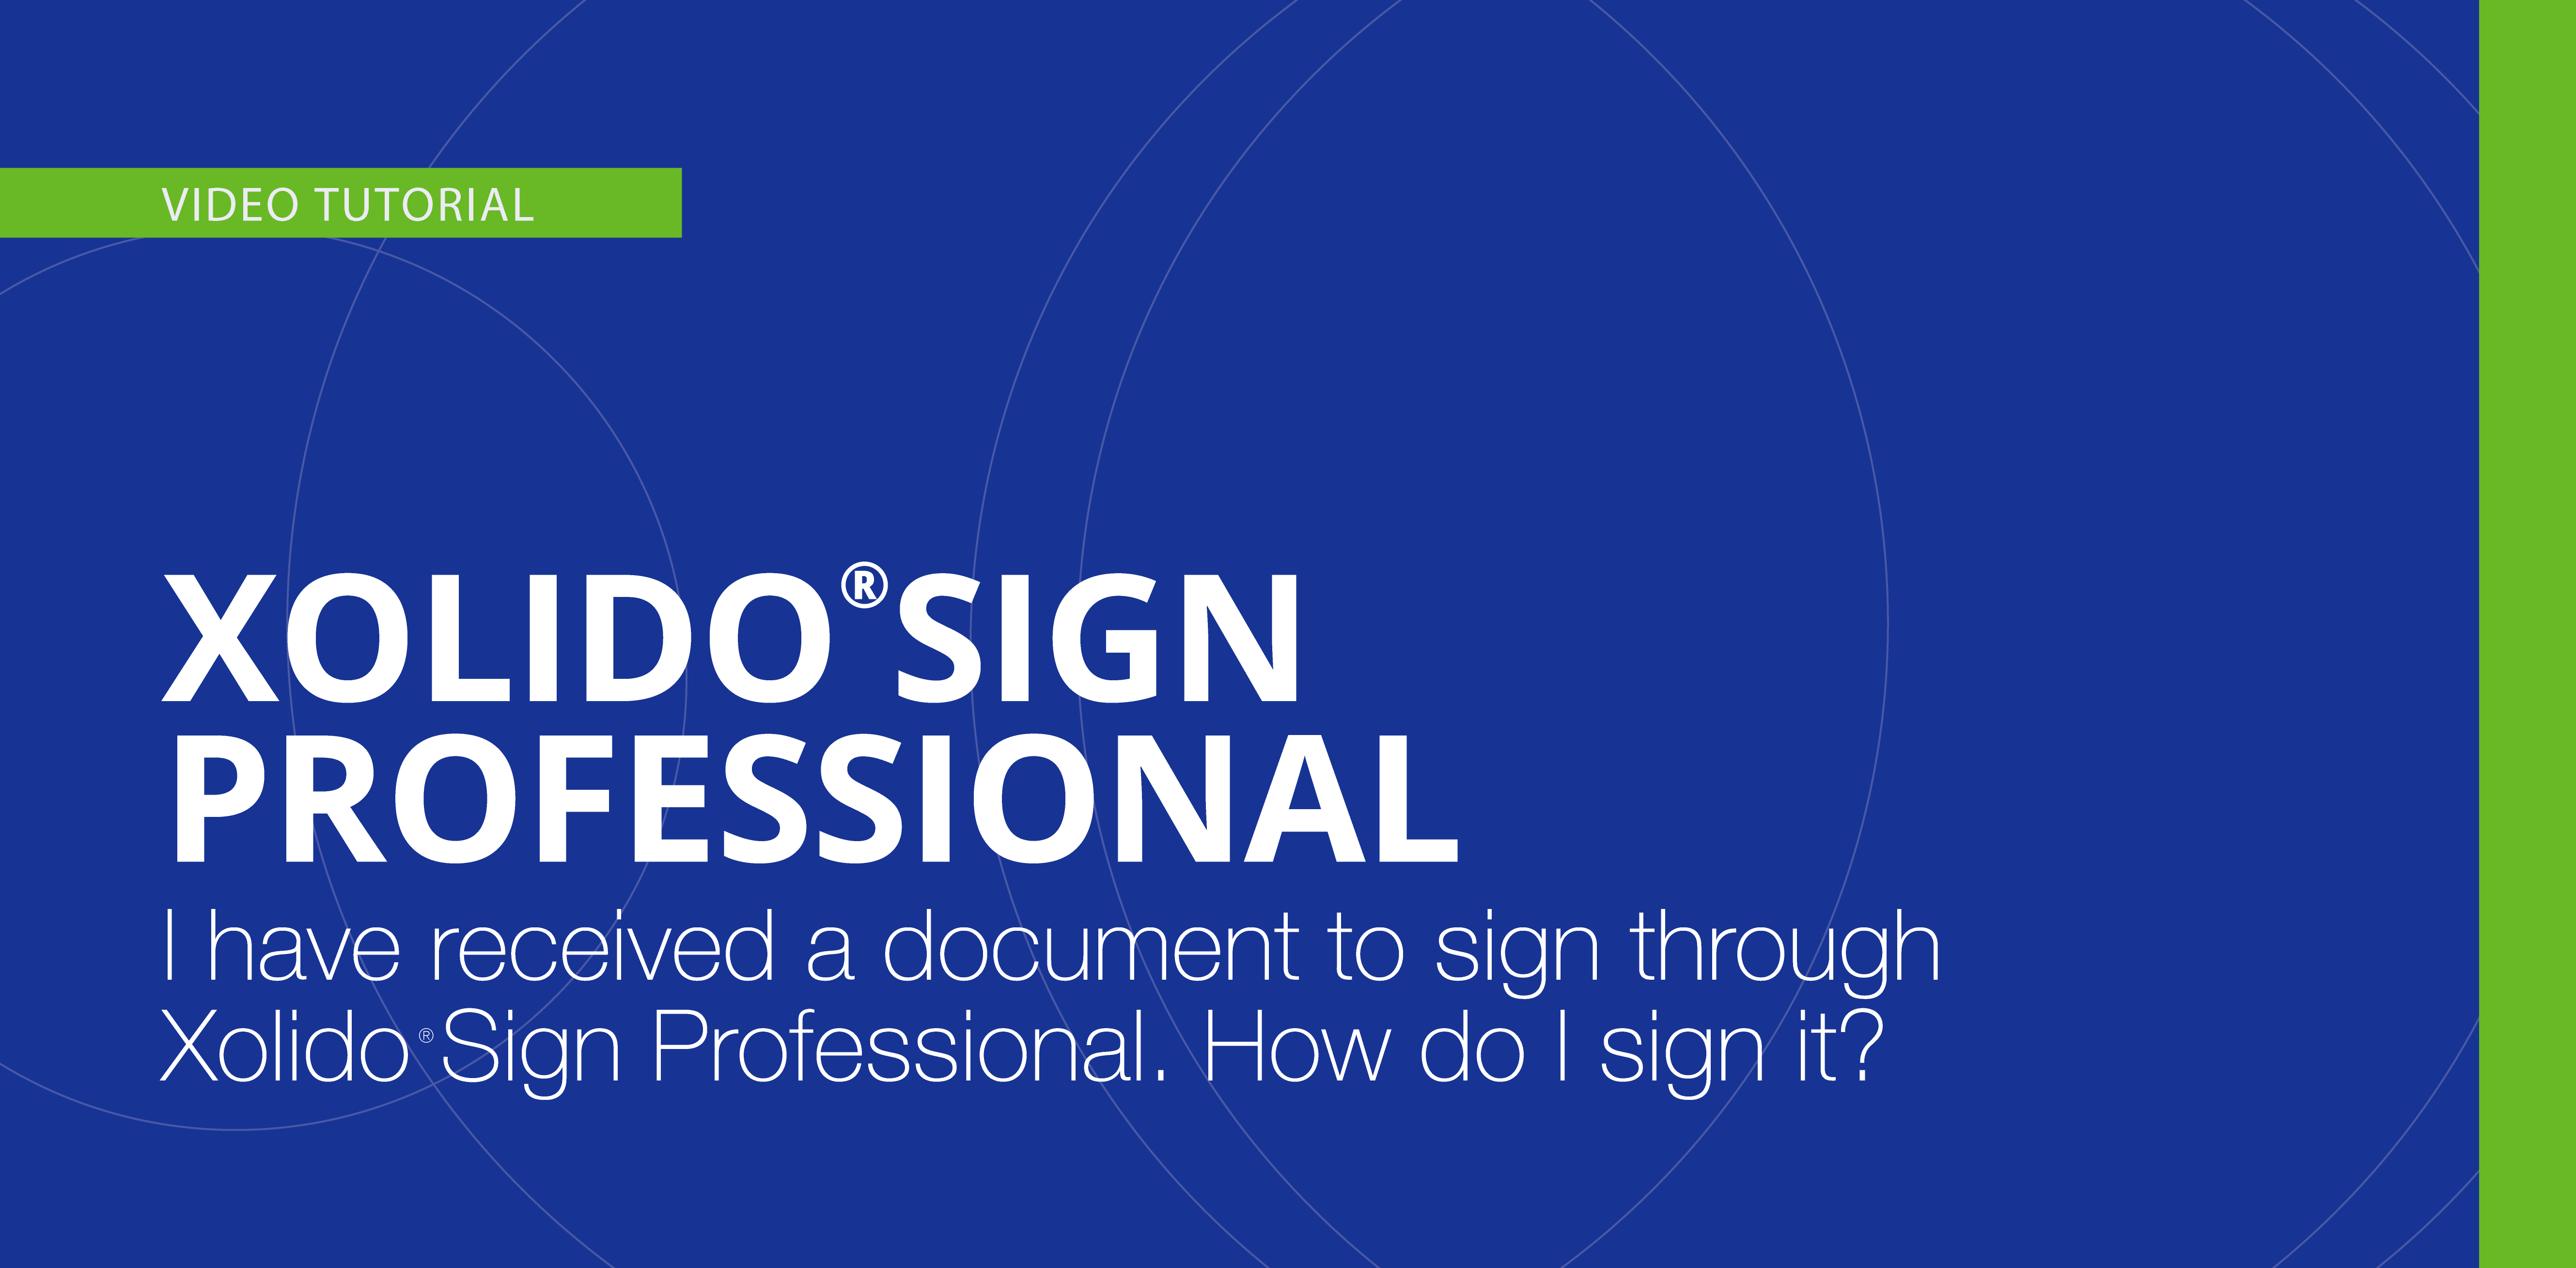 I have received a document to sign through Xolido®Sign Professional